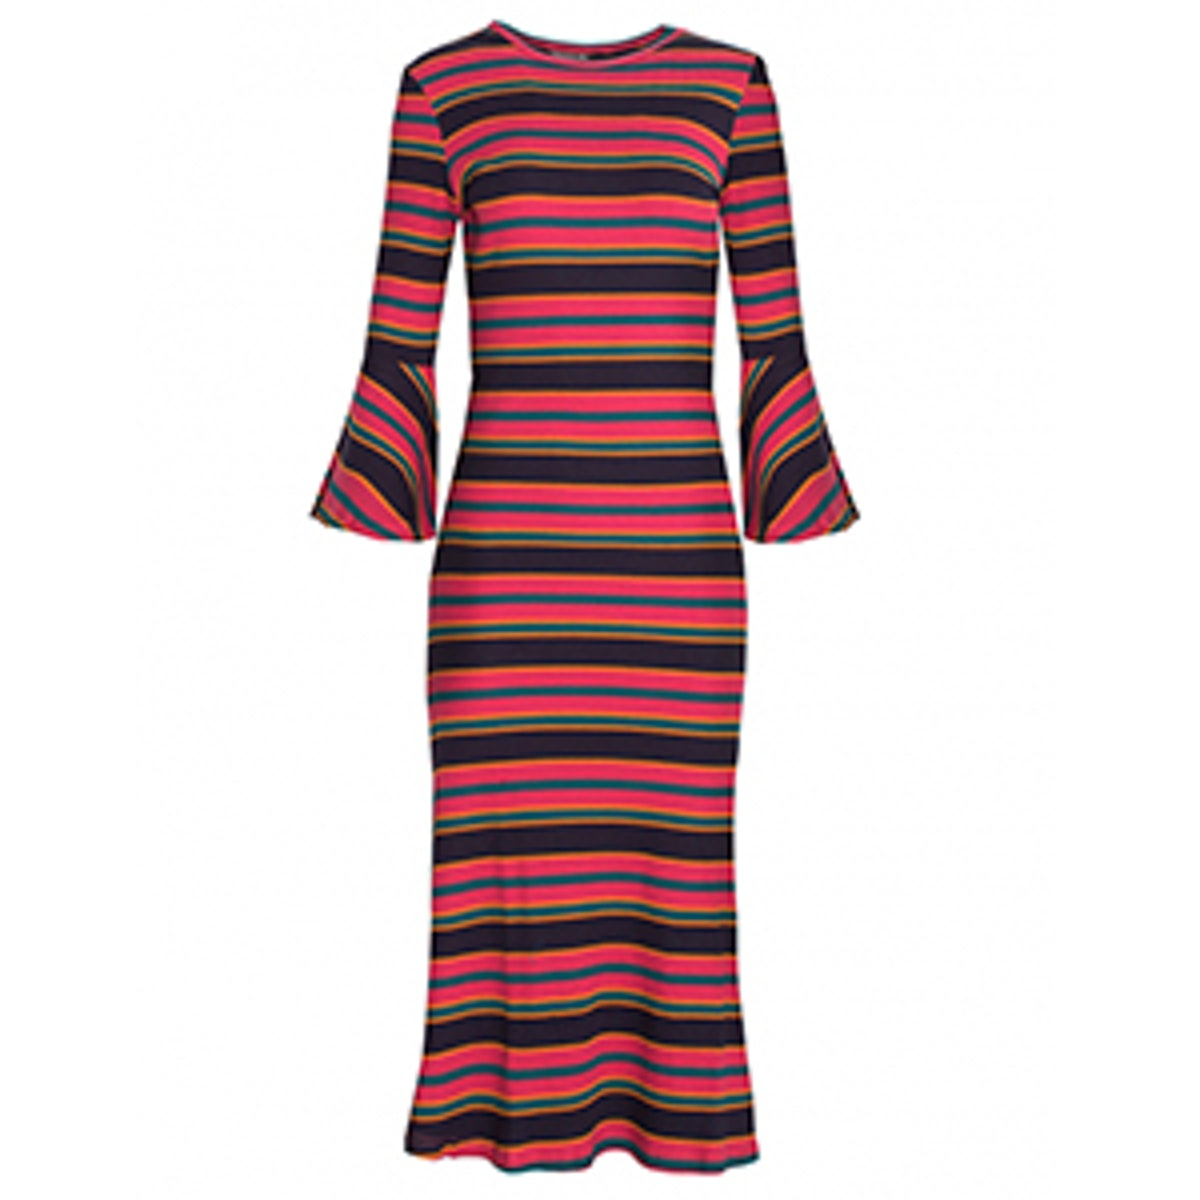 The Other Side Knit Dress